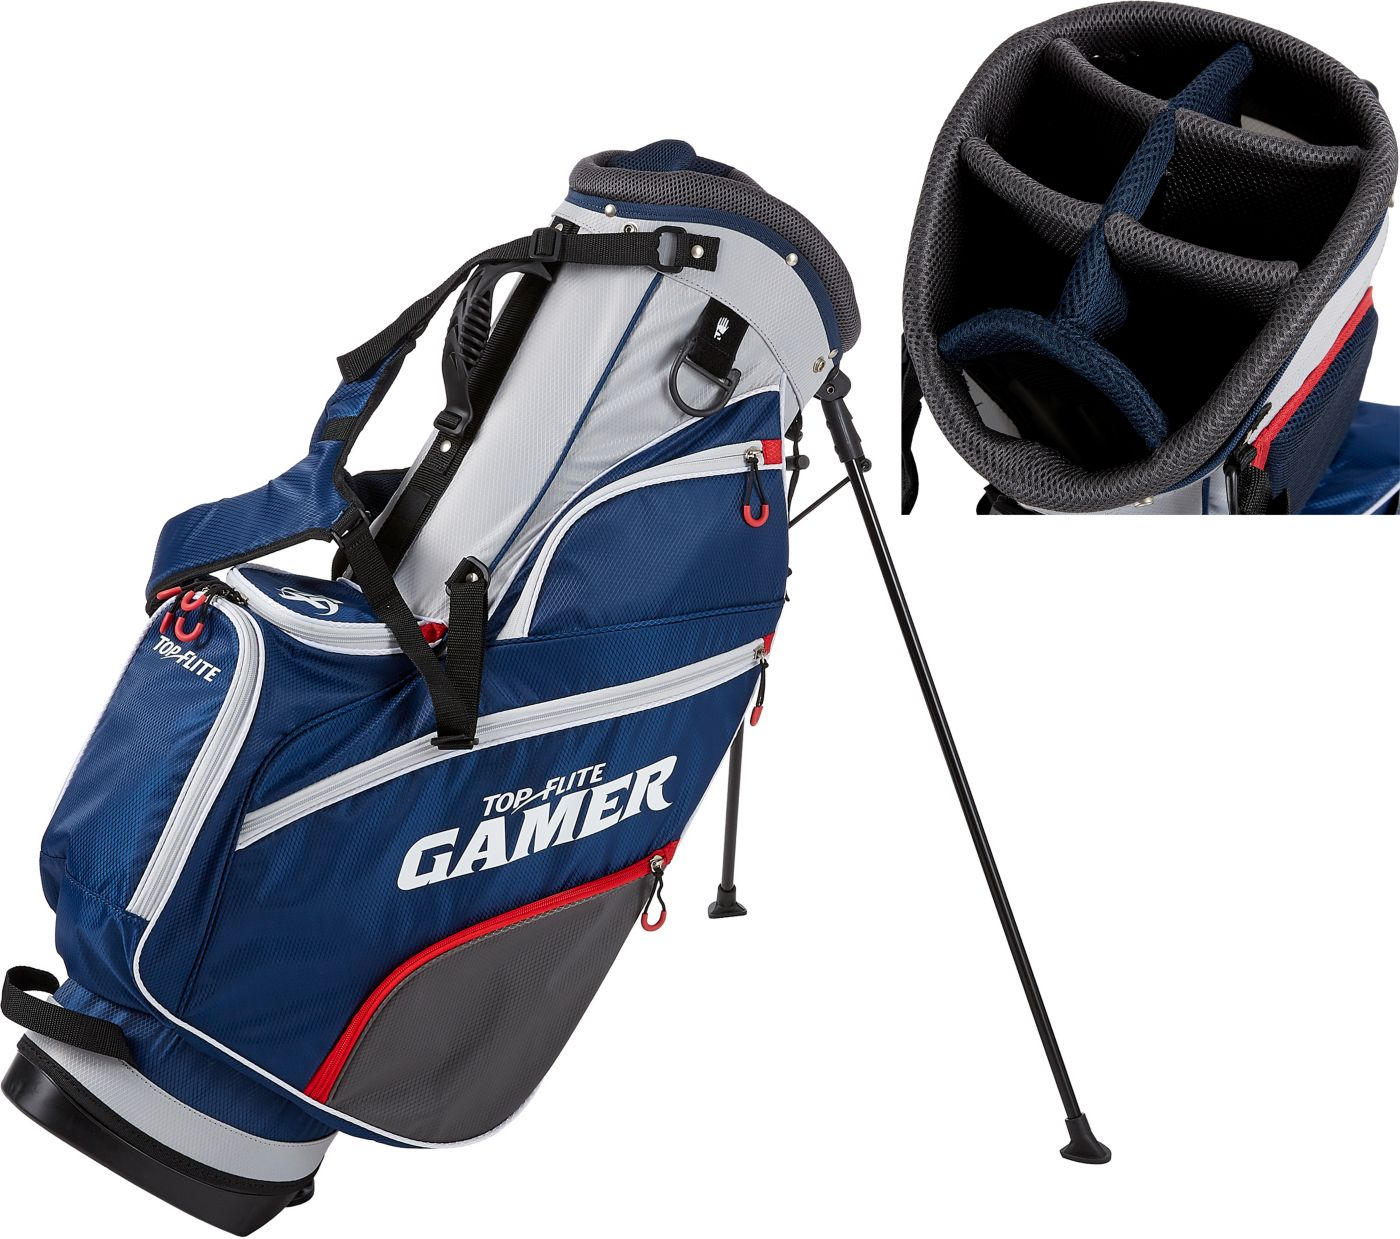 Top Flite 2019 Gamer Golf Stand Bag